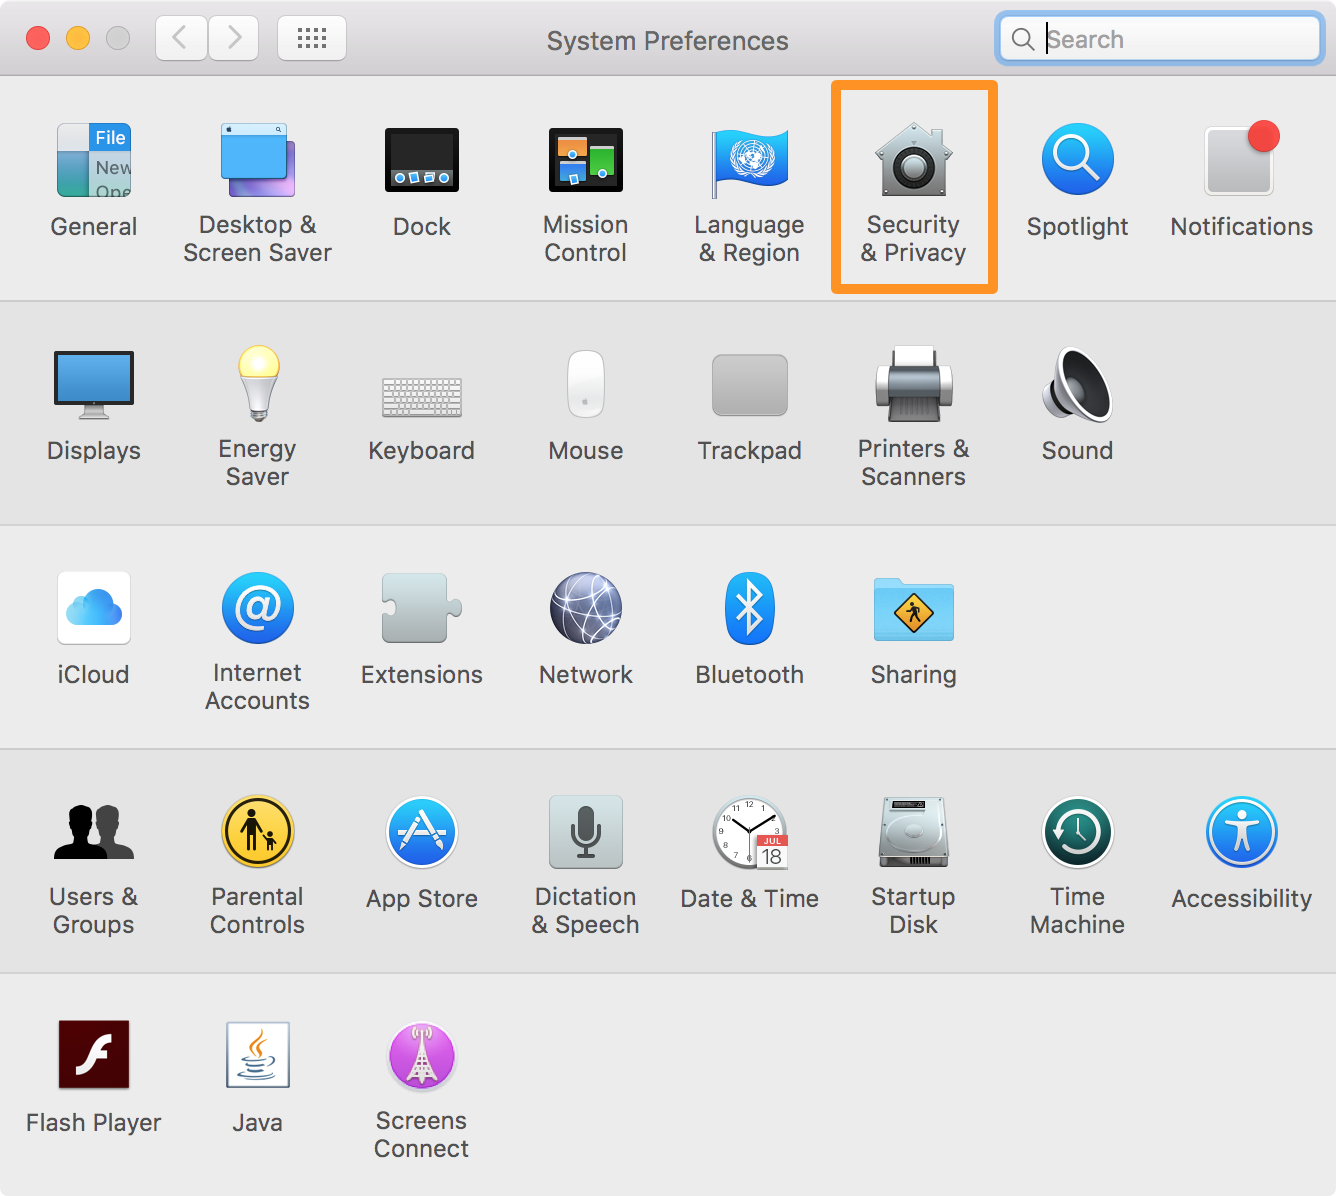 mac location services - Mac Security and Privacy system preferences